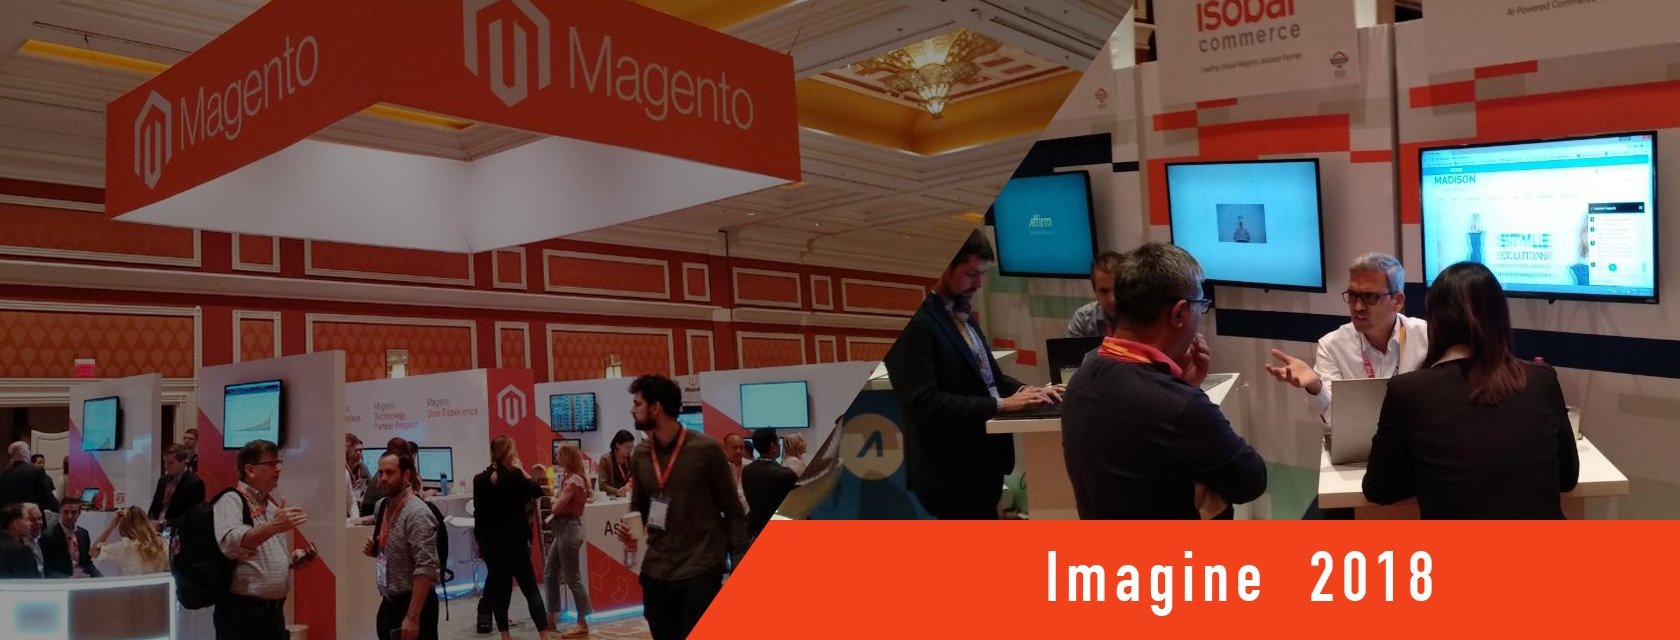 Magento Imagine 2018 – Excerpts of what we enjoyed, observed and learned